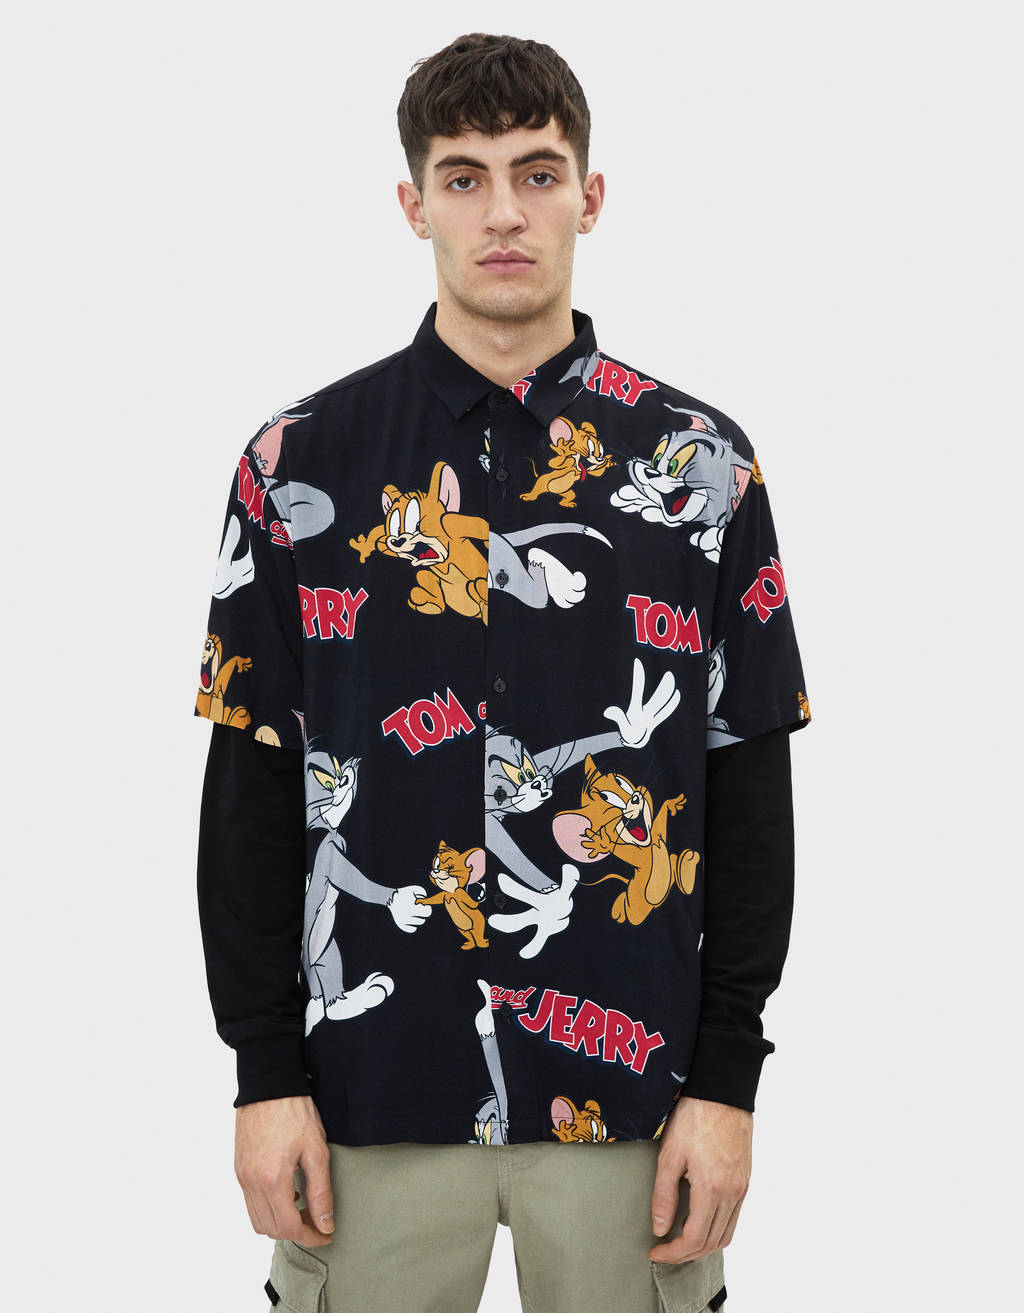 Tom & Jerry shirt